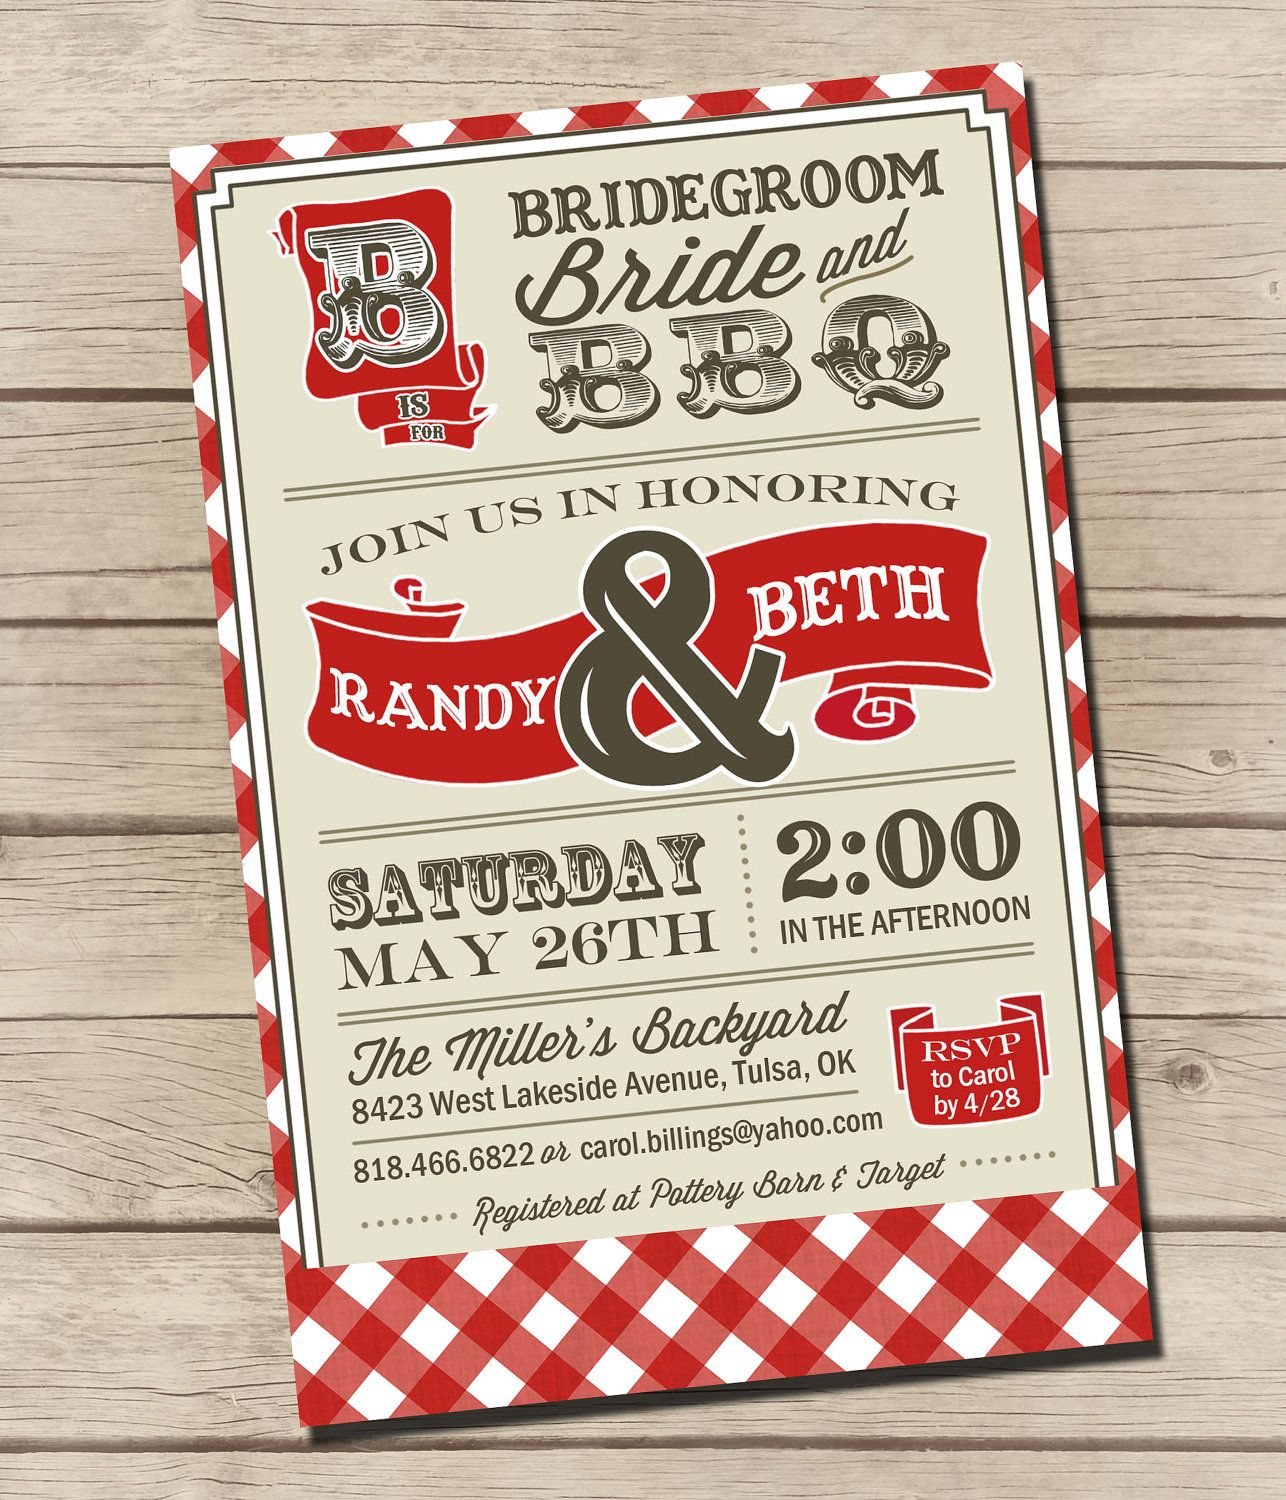 Magnificent Monopoly Wedding Invitations Images Resume Ideas